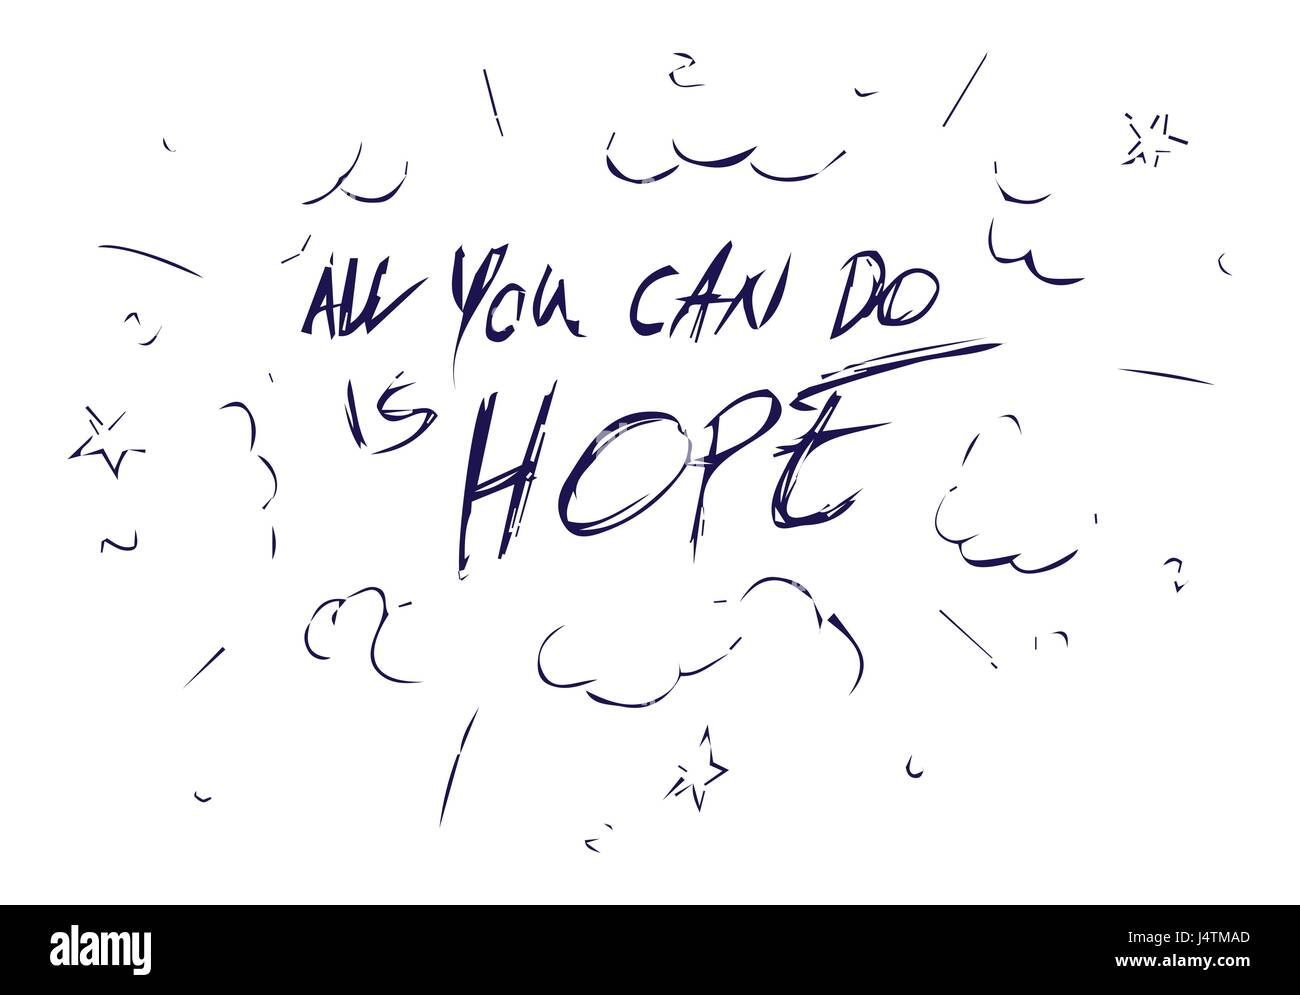 Inspirational quote - All you can do is hope. For postcard and poster graphic design. - Stock Image